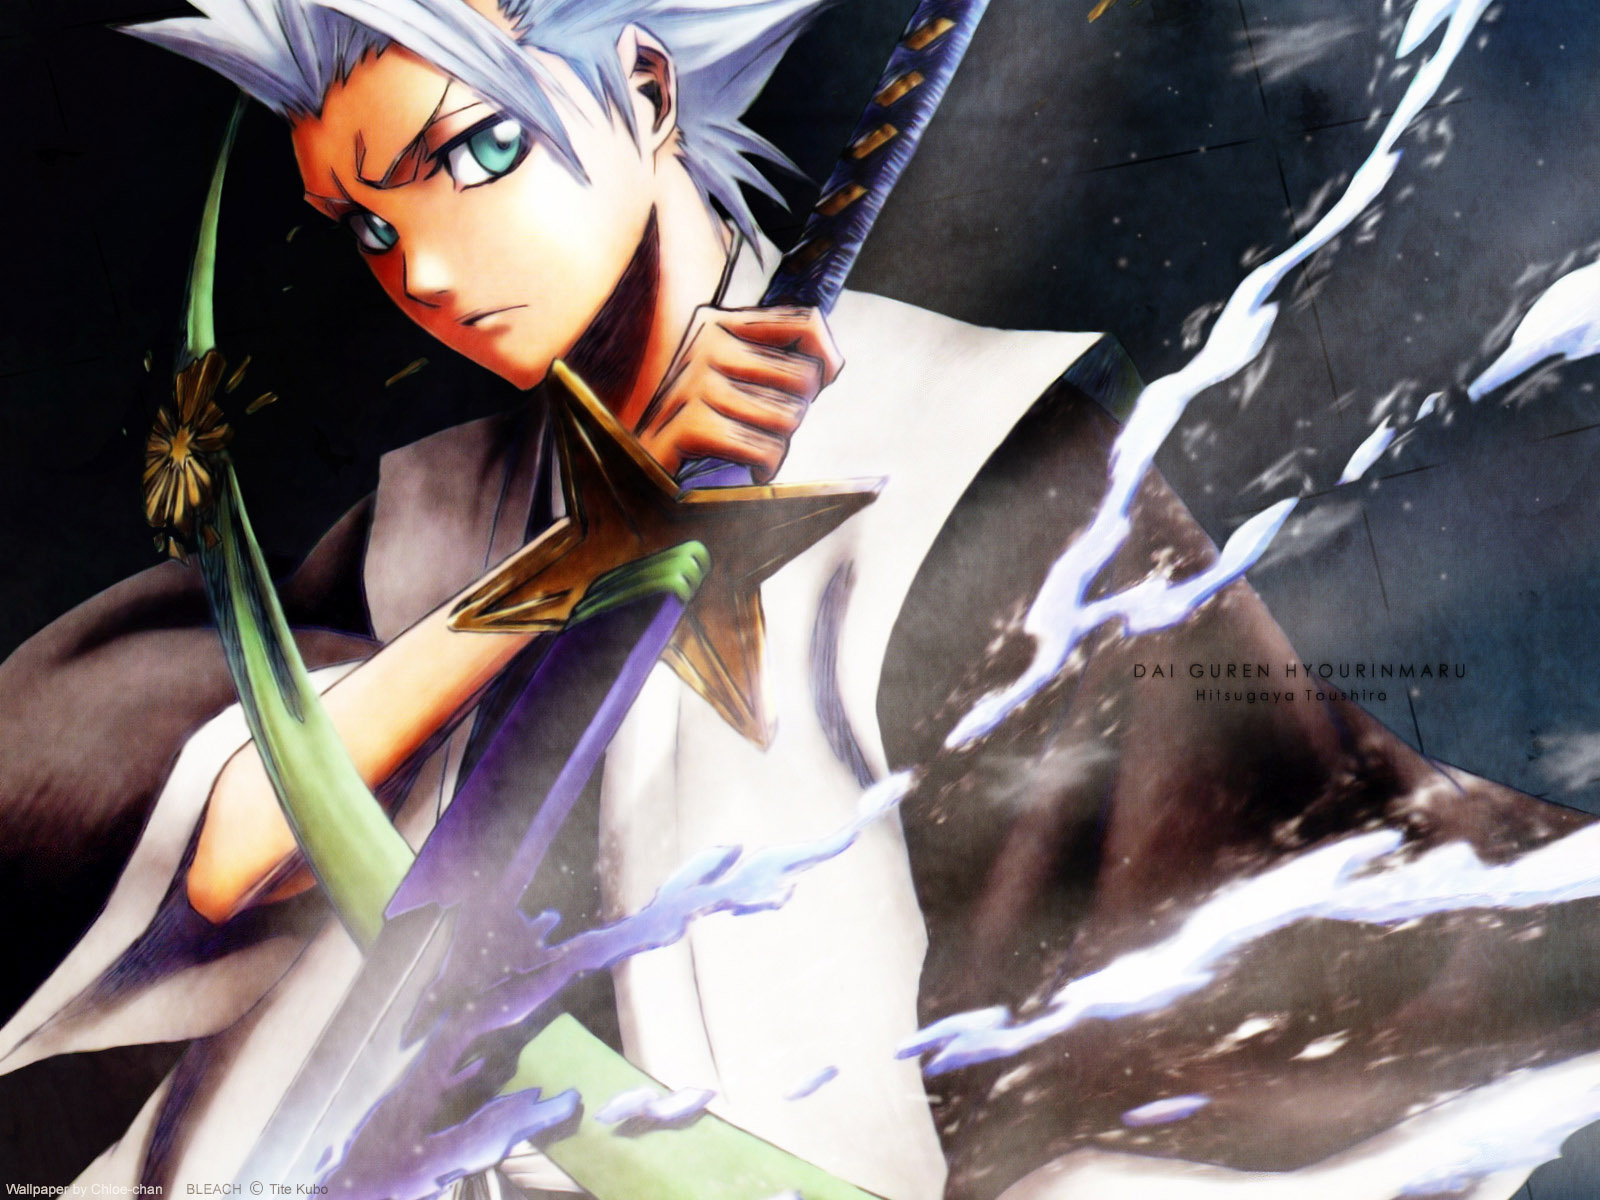 http://4.bp.blogspot.com/_JU_j7jj5TjU/TML09cZvYGI/AAAAAAAAAJ0/y-iszLdFlb4/s1600/1248852593_1600x1200_bleach-wallpaper-for-pc.jpg